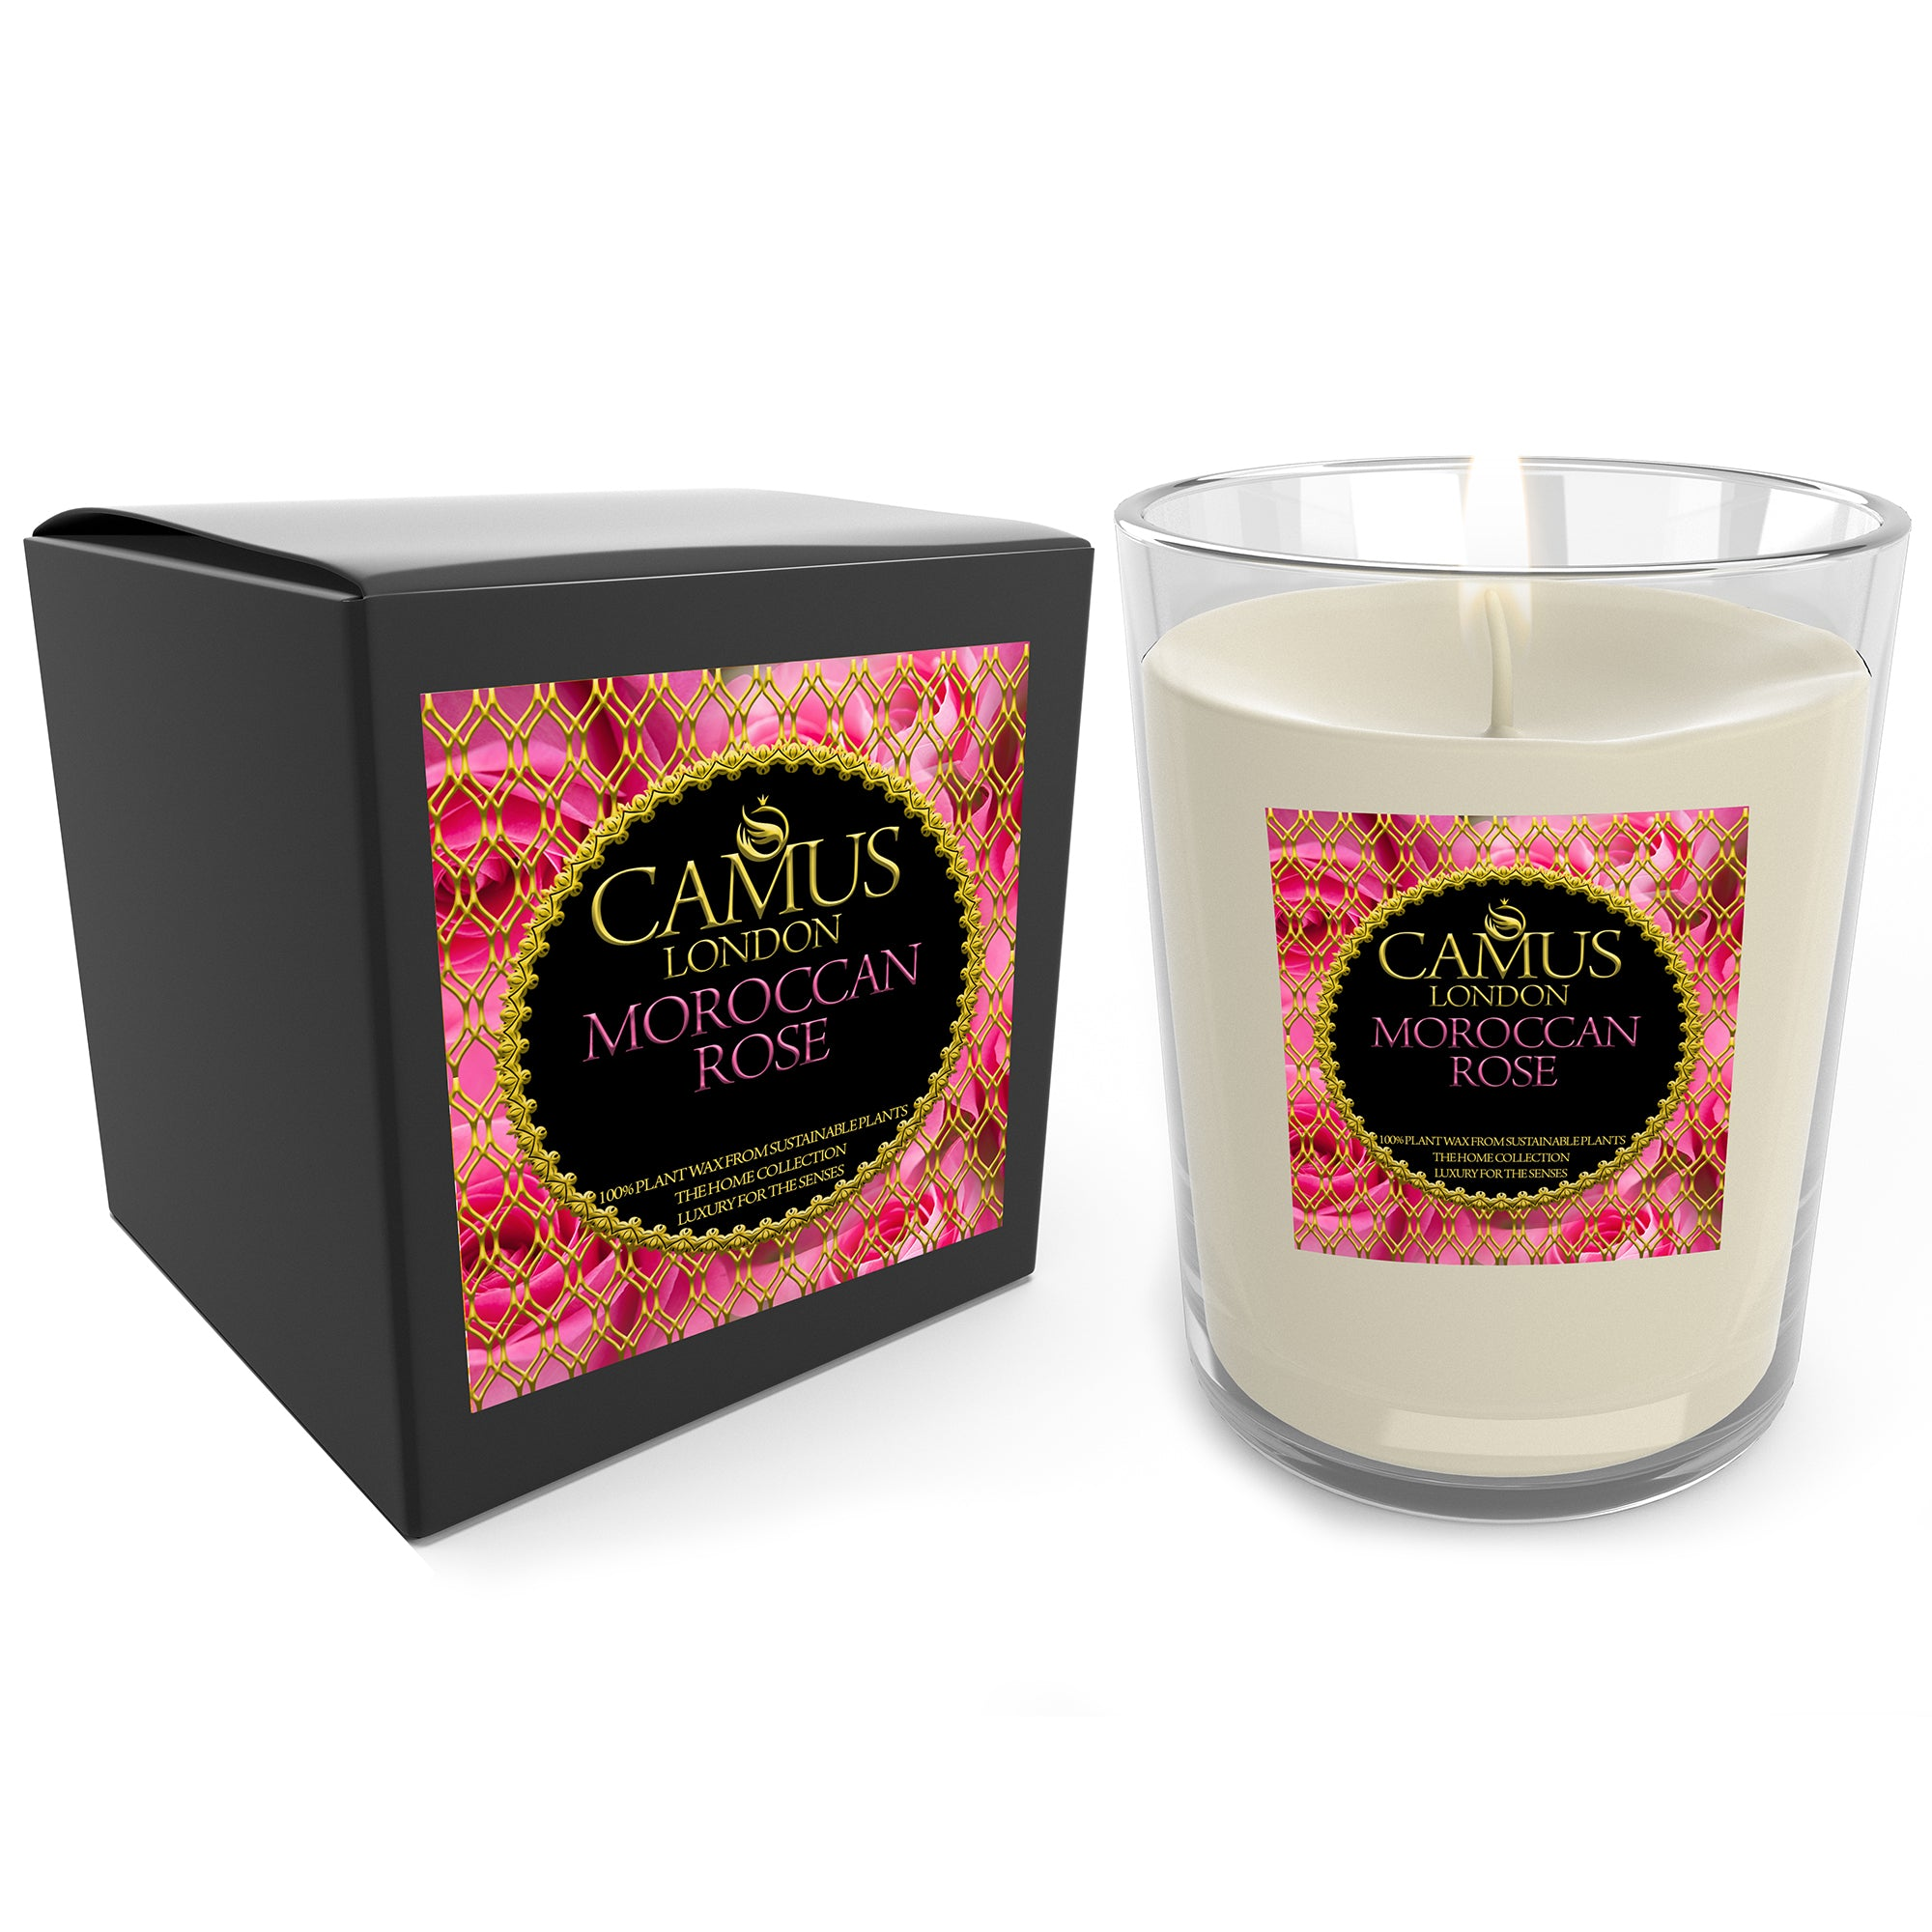 The Home Collection Essential Oil Moroccan Rose Luxury Candle 100% Plant Wax